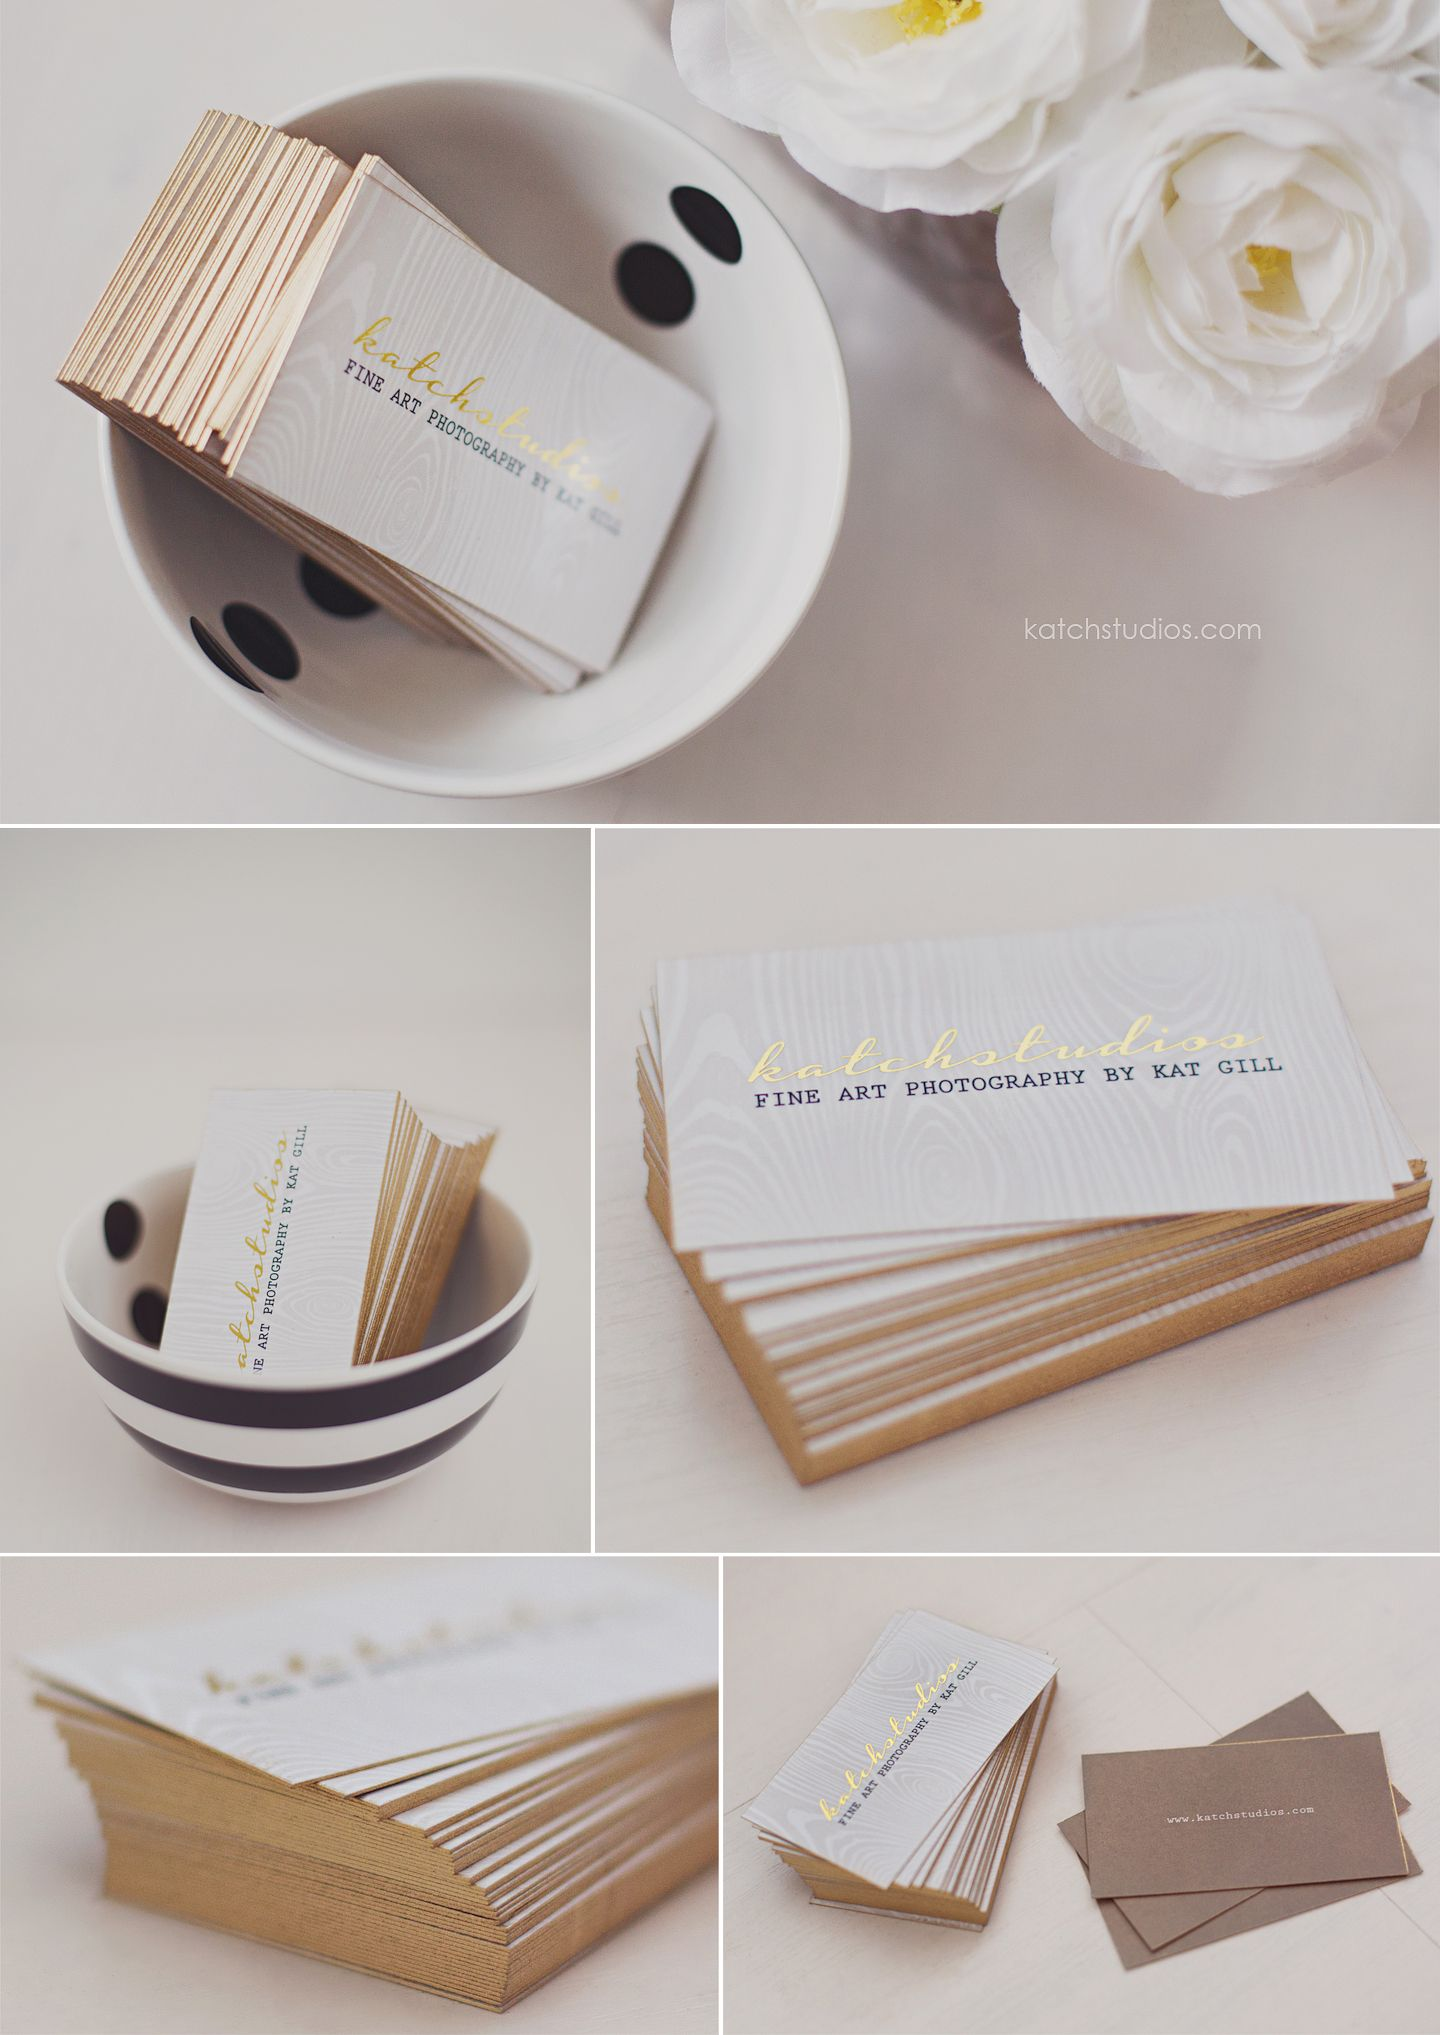 Jukeboxprint is the next place I order mu business cards from